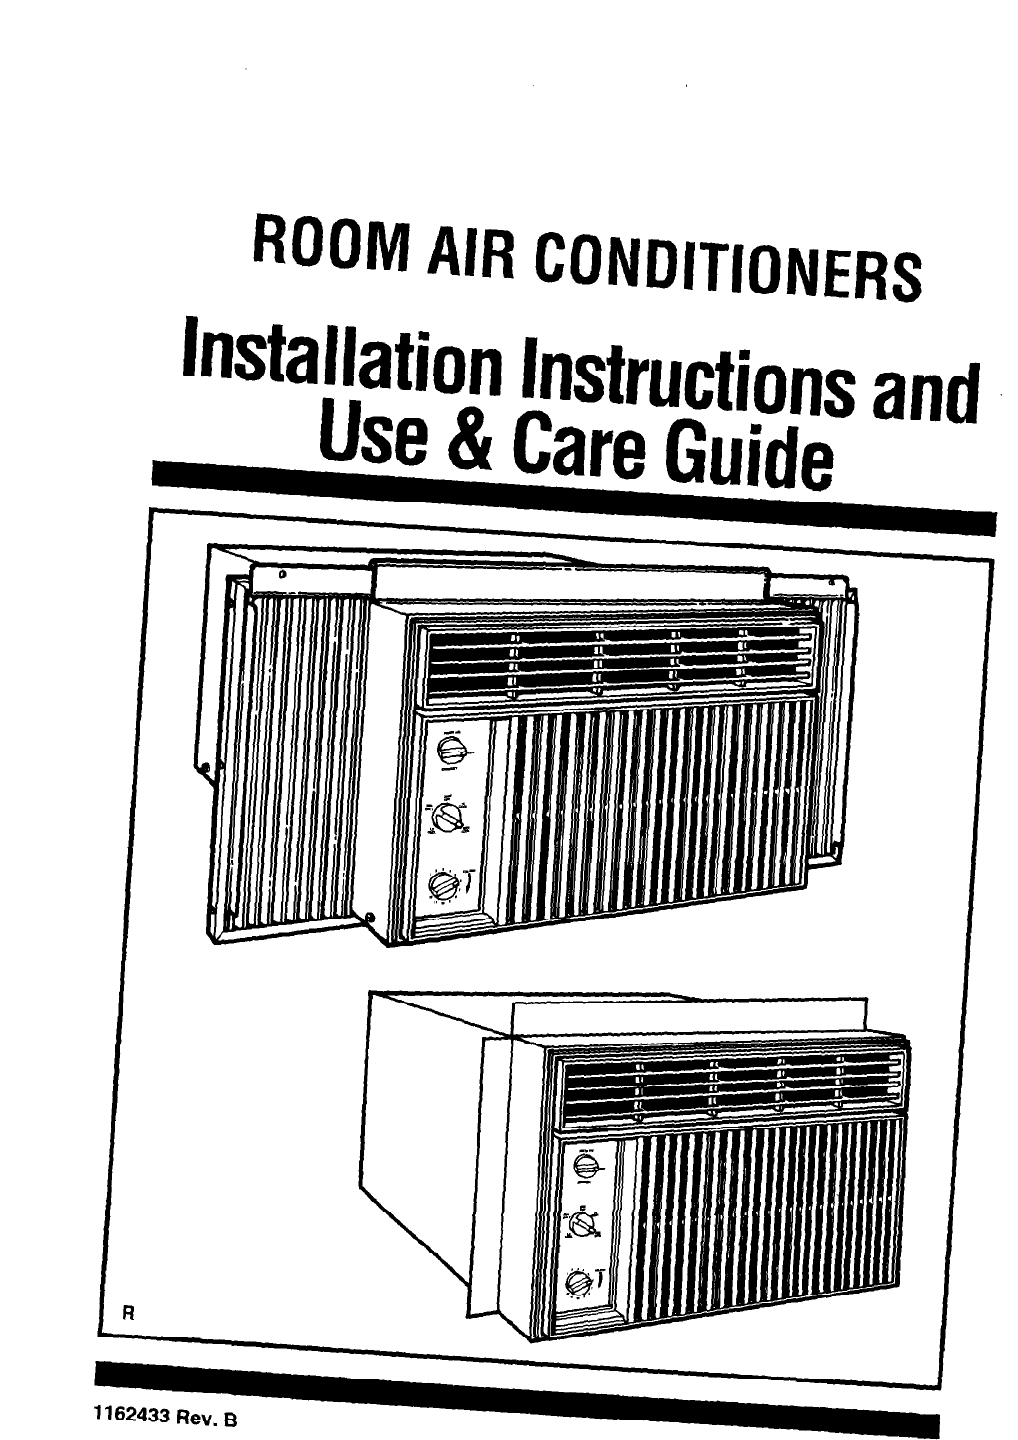 Whirlpool Air Conditioner ACC602XP0 User Guide